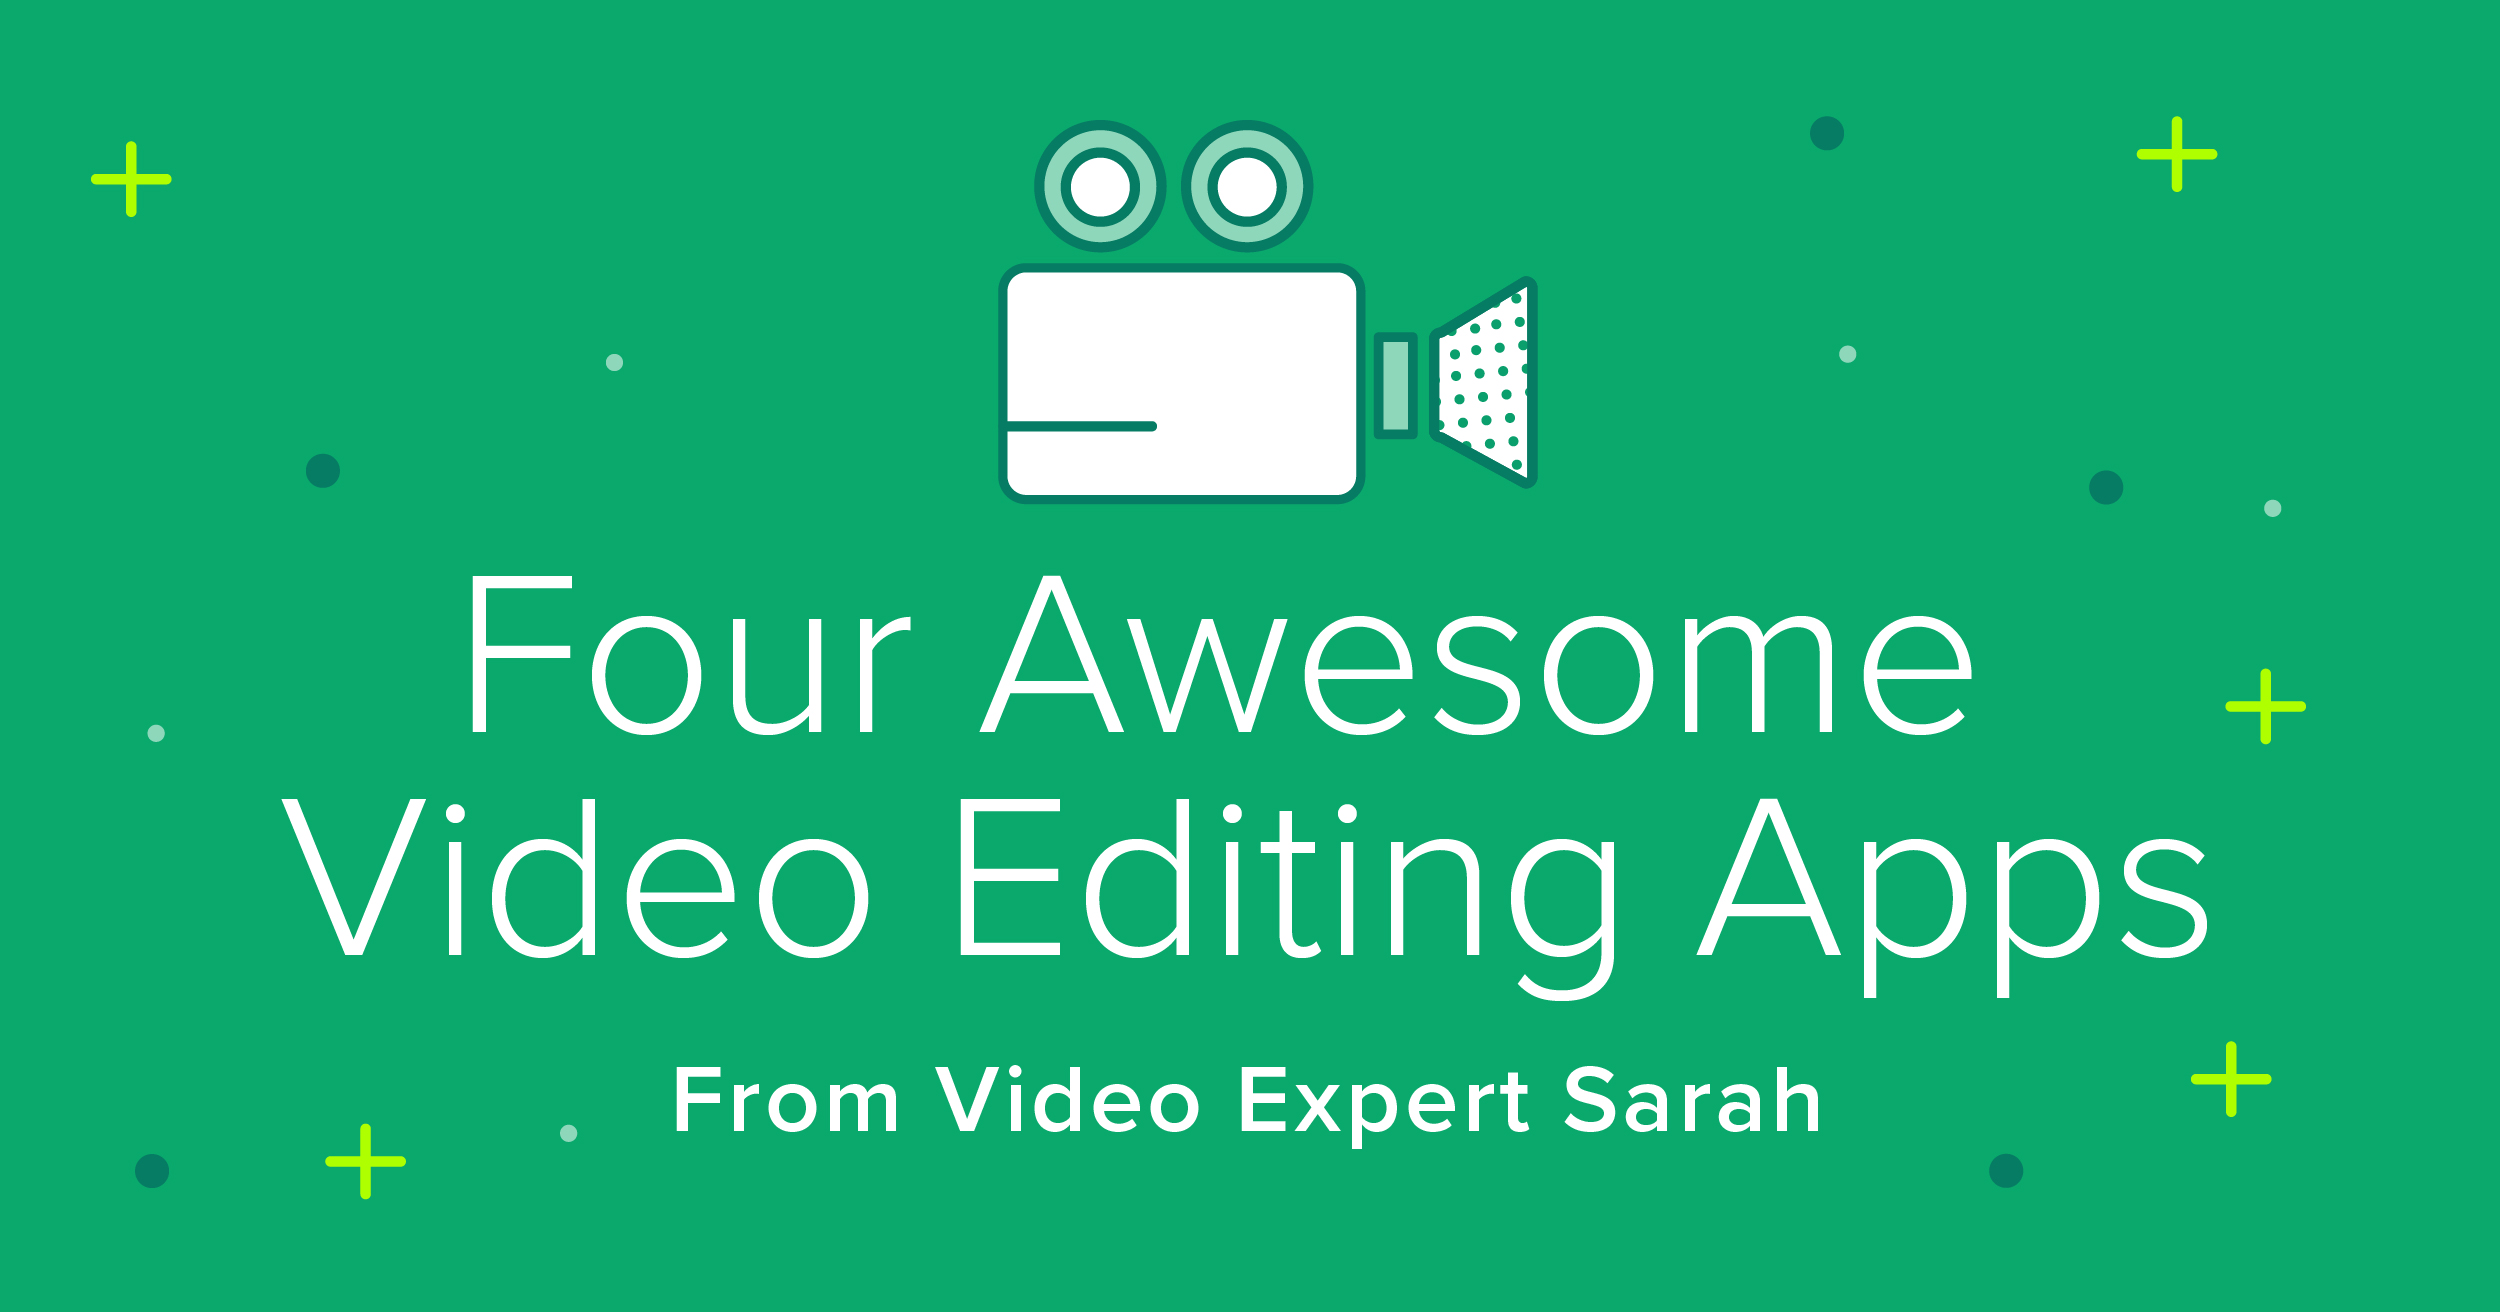 What's better than an easy-to-use editing app for your iPad? A free one, of course! If you're in the market, check out these awesome video editing apps.